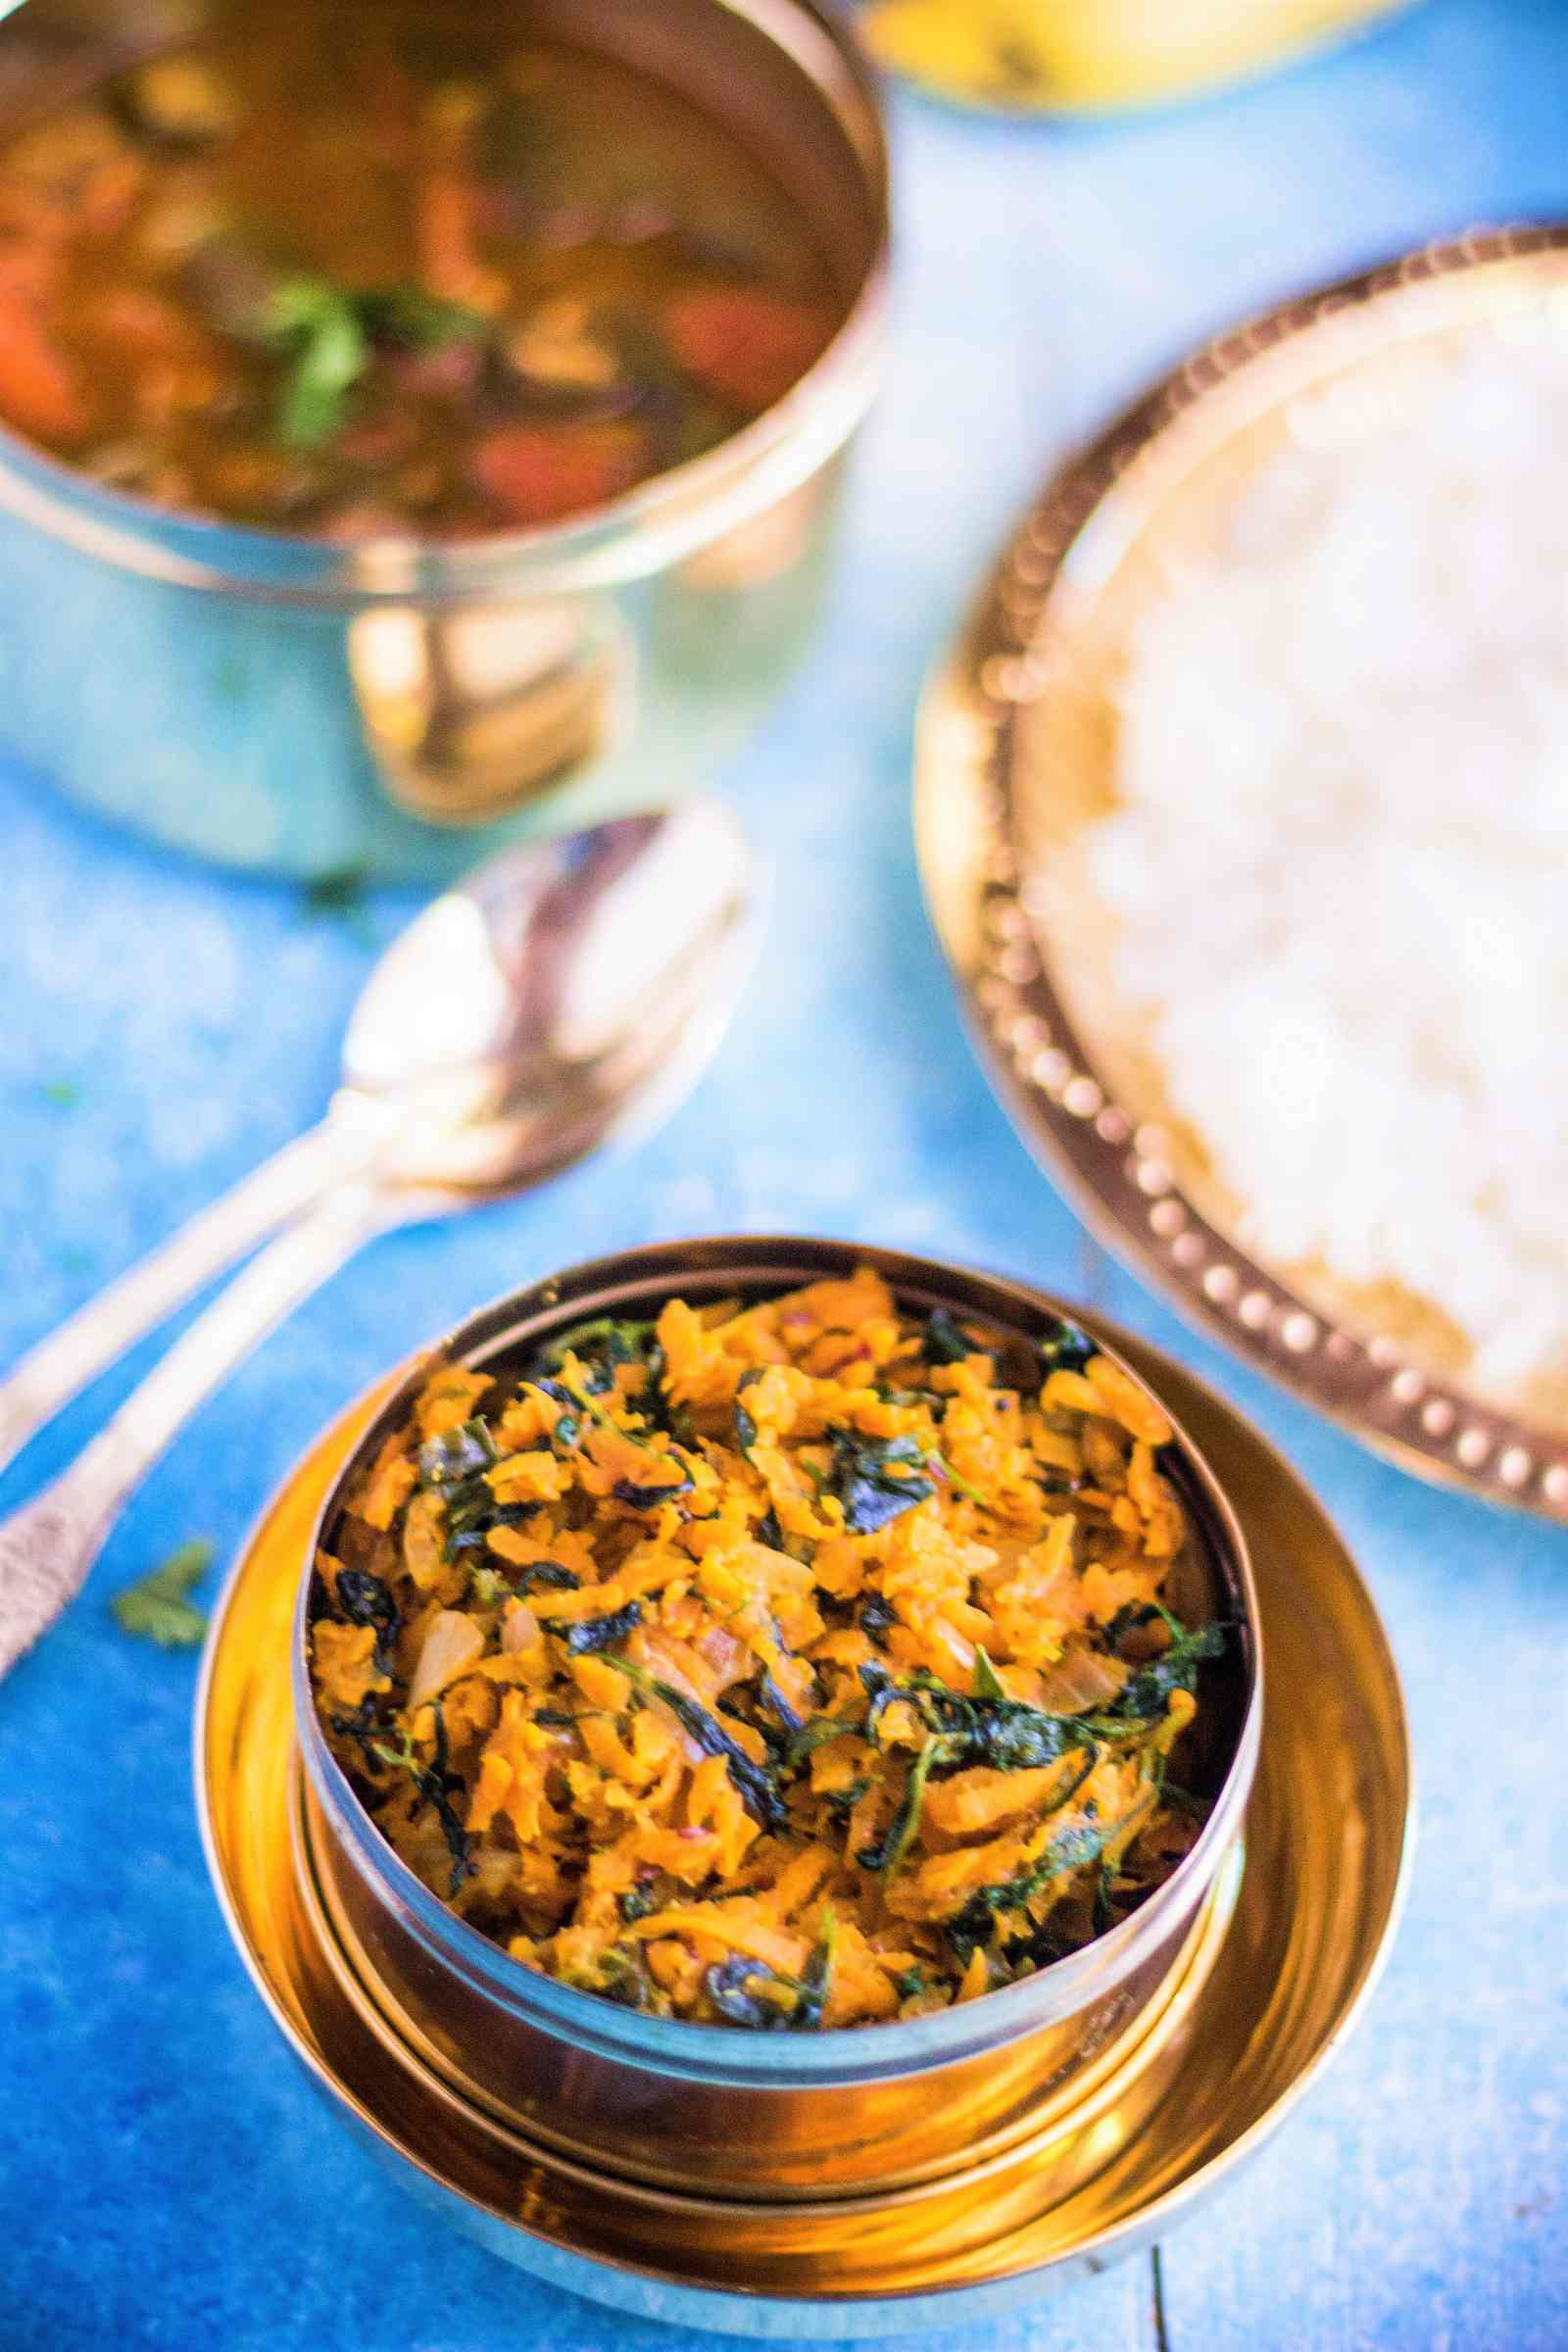 Gajar Methi Poriyal Recipe - Carrot Fenugreek Stir Fry